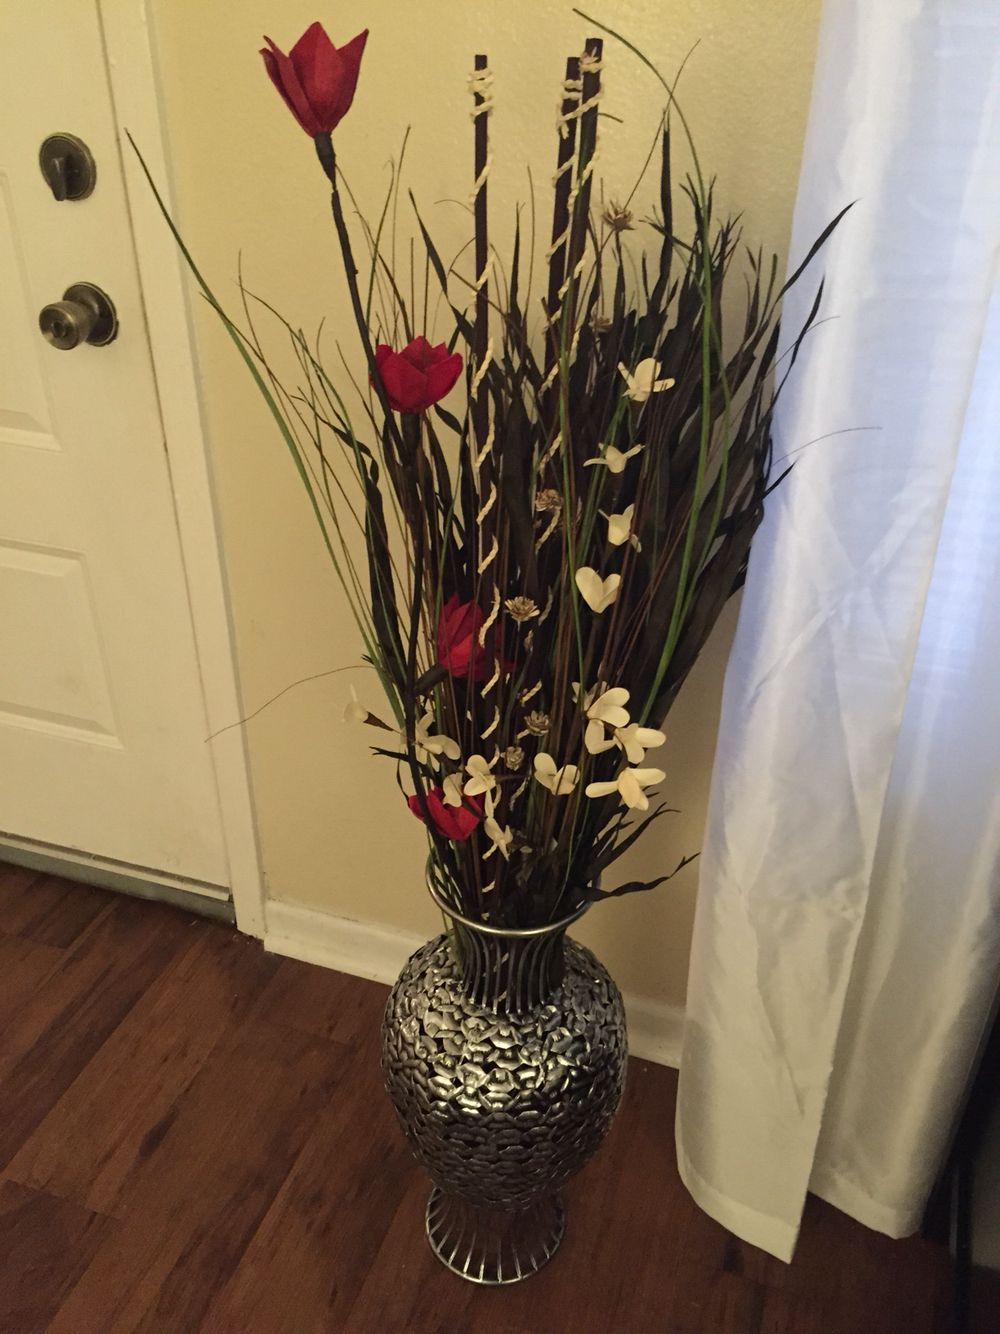 My Floor Vase The Was Purchased From Ross As Well Decorative Flowers And Bamboo Sticks I Paid About 20 For Everything